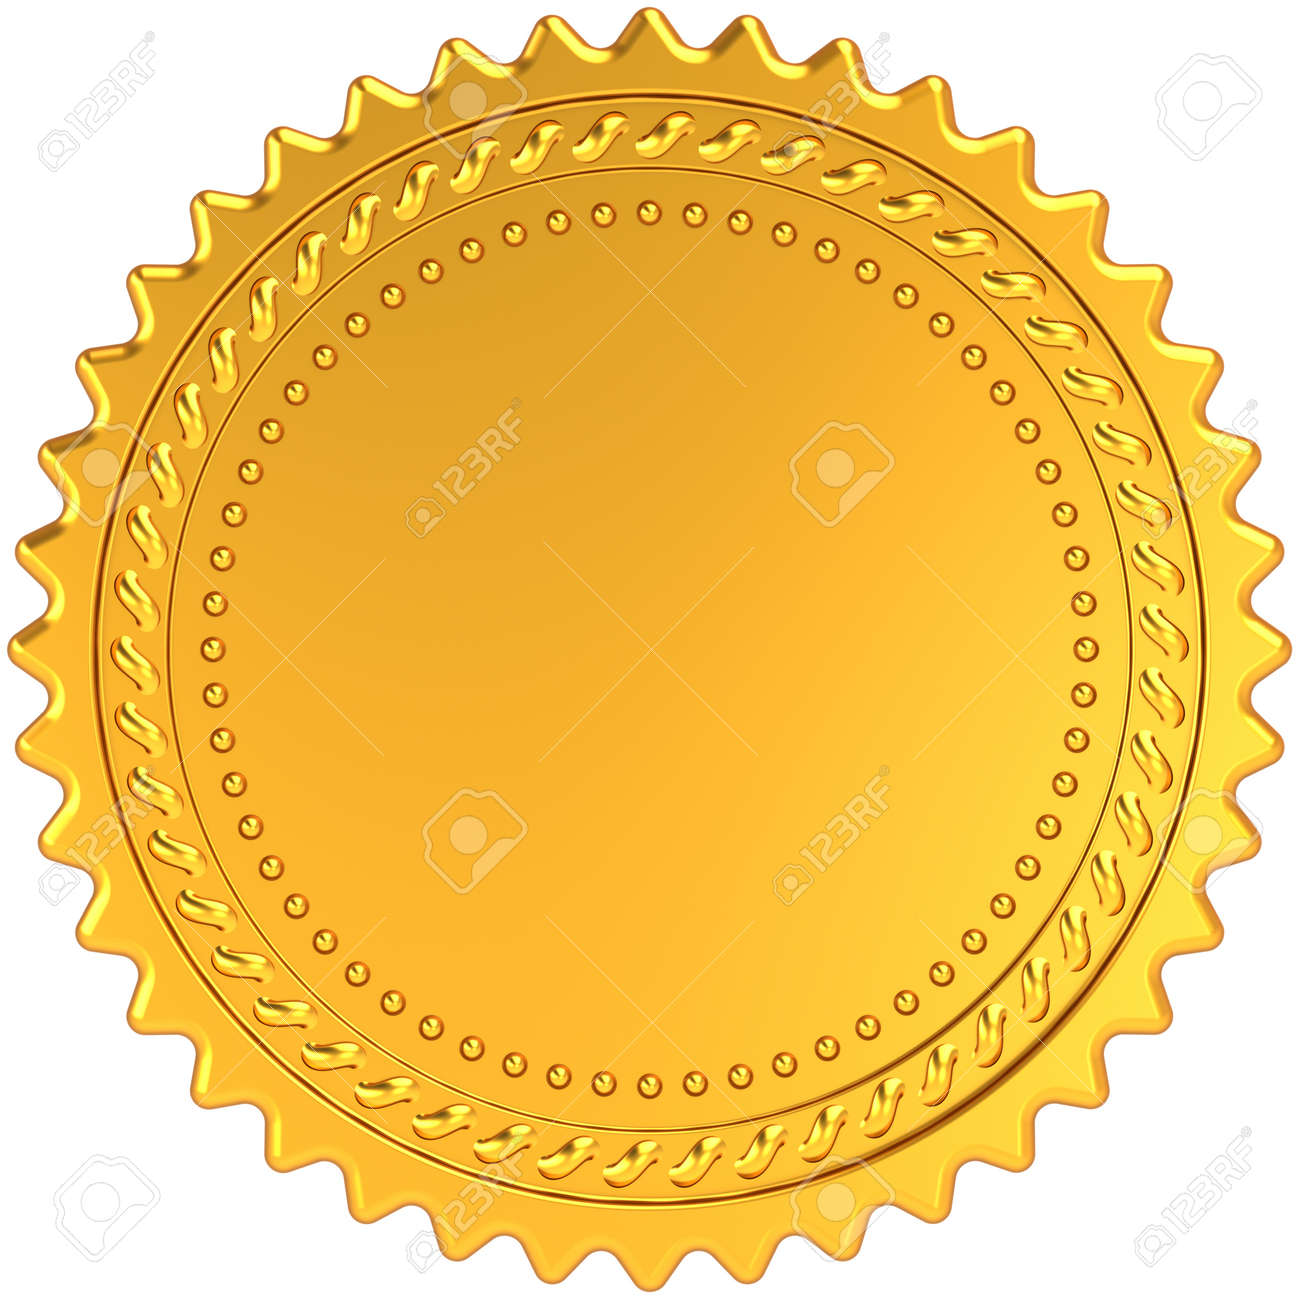 Golden Award Medal Blank Seal Luxury Champion Badge Label